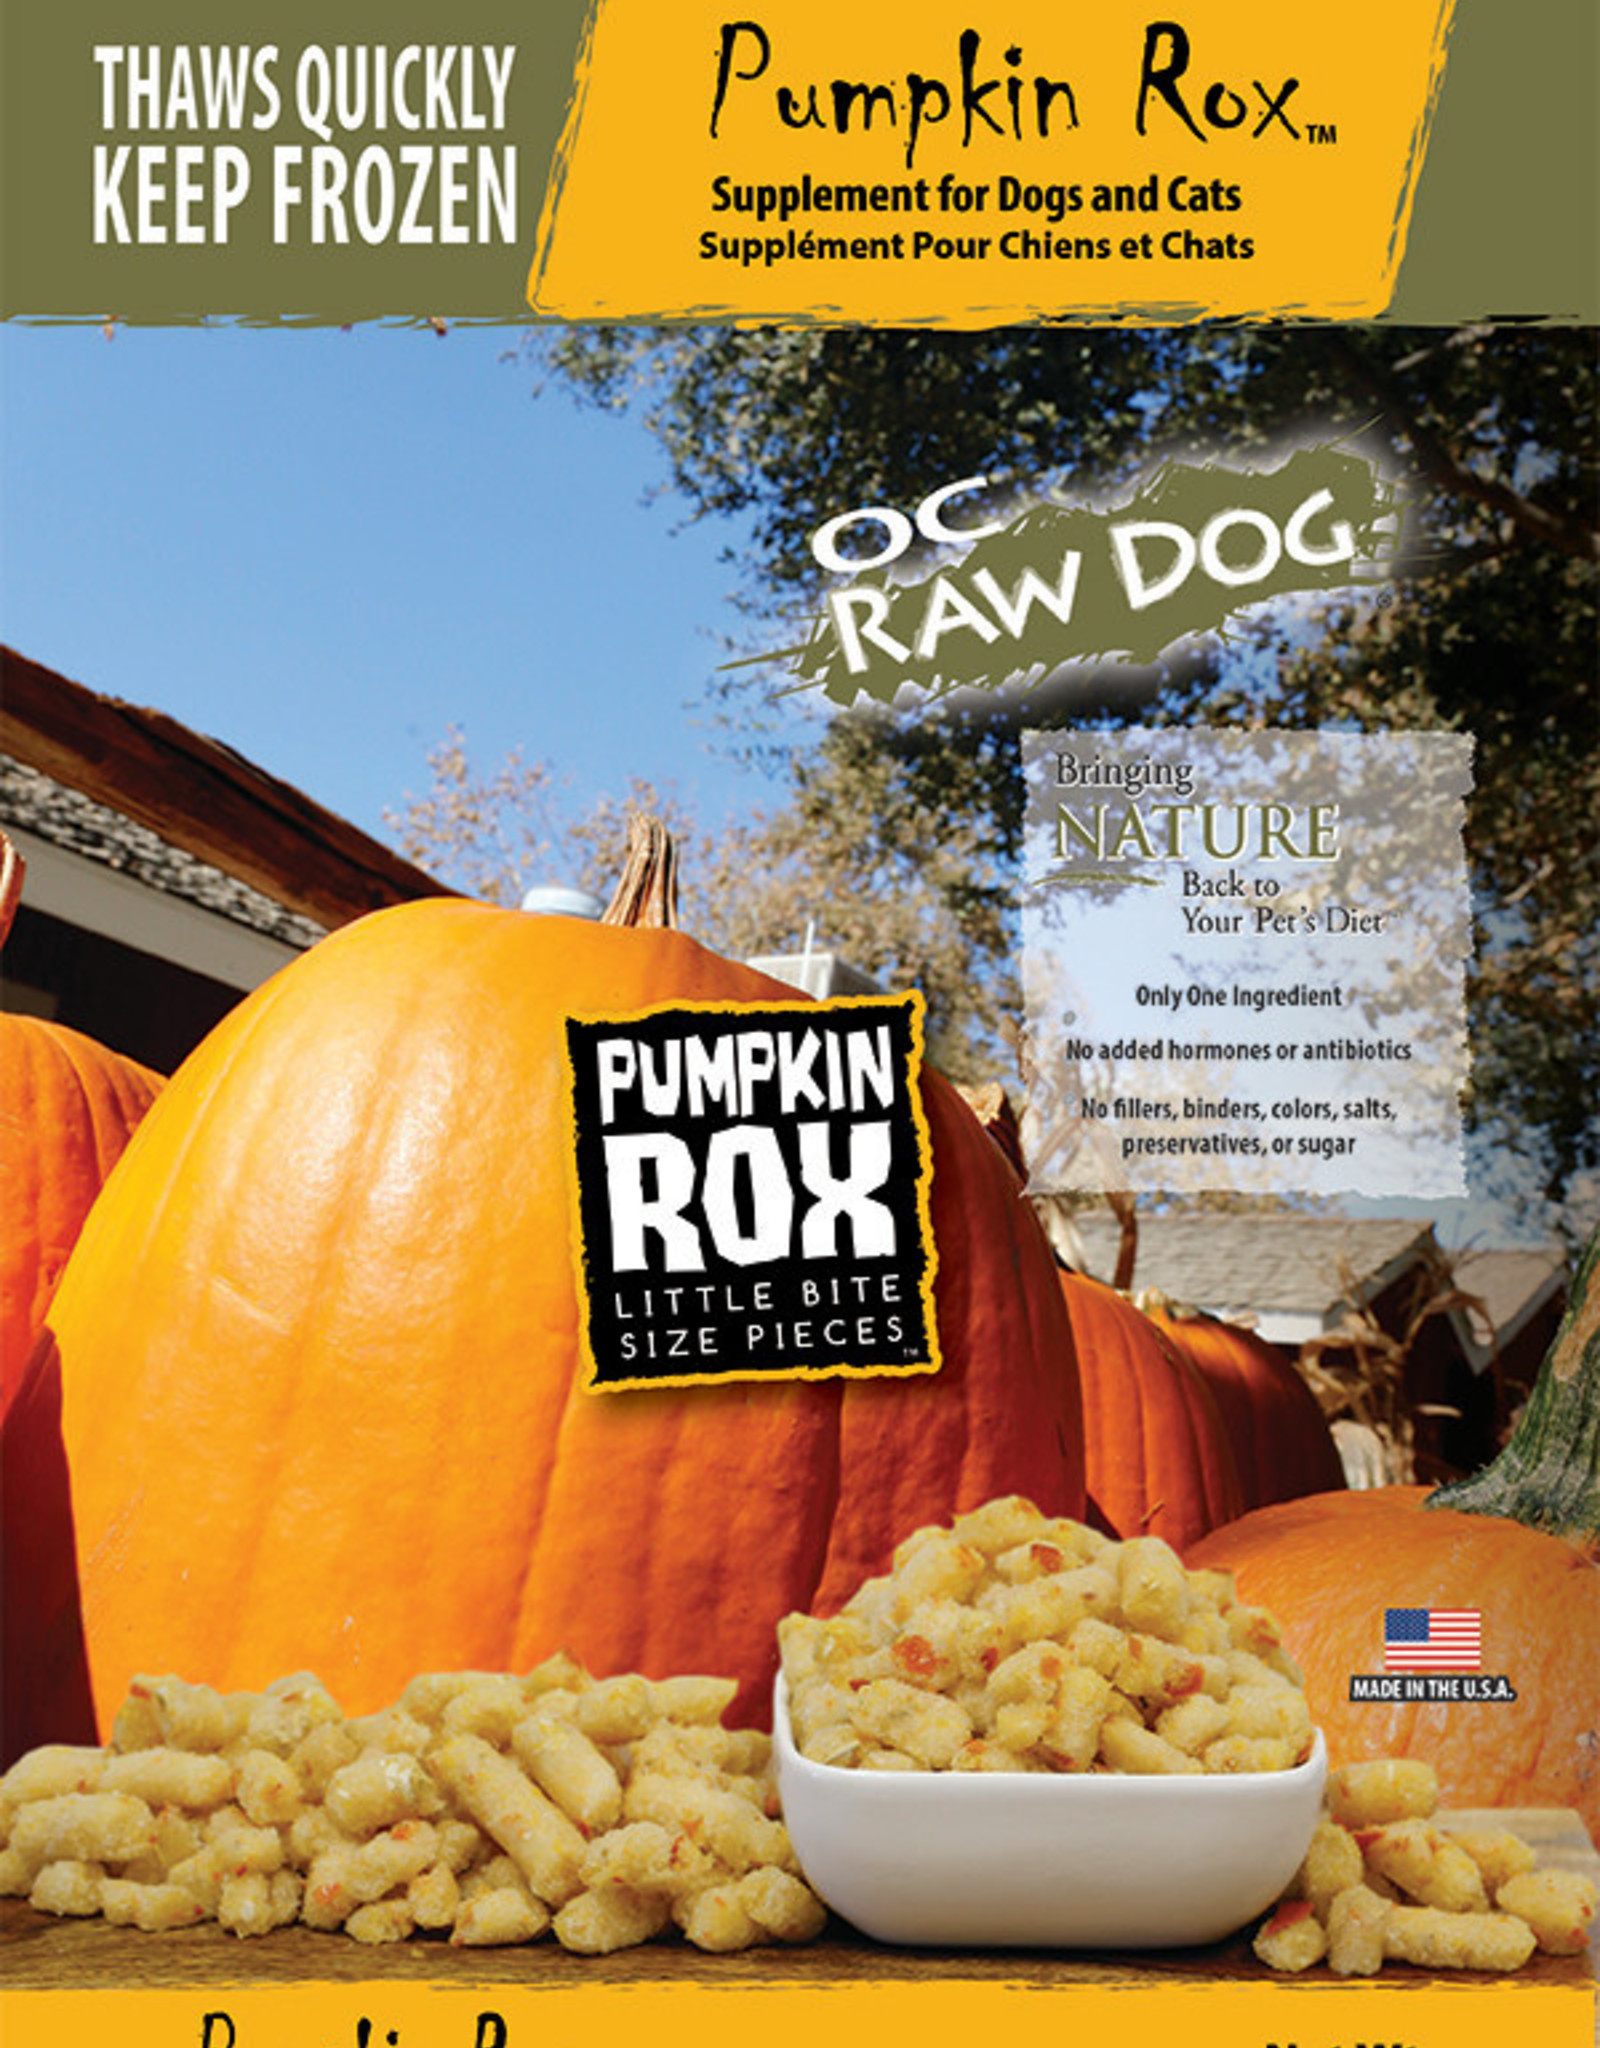 OC Raw Dog OC Raw Dog Frozen Pumpkin Rox